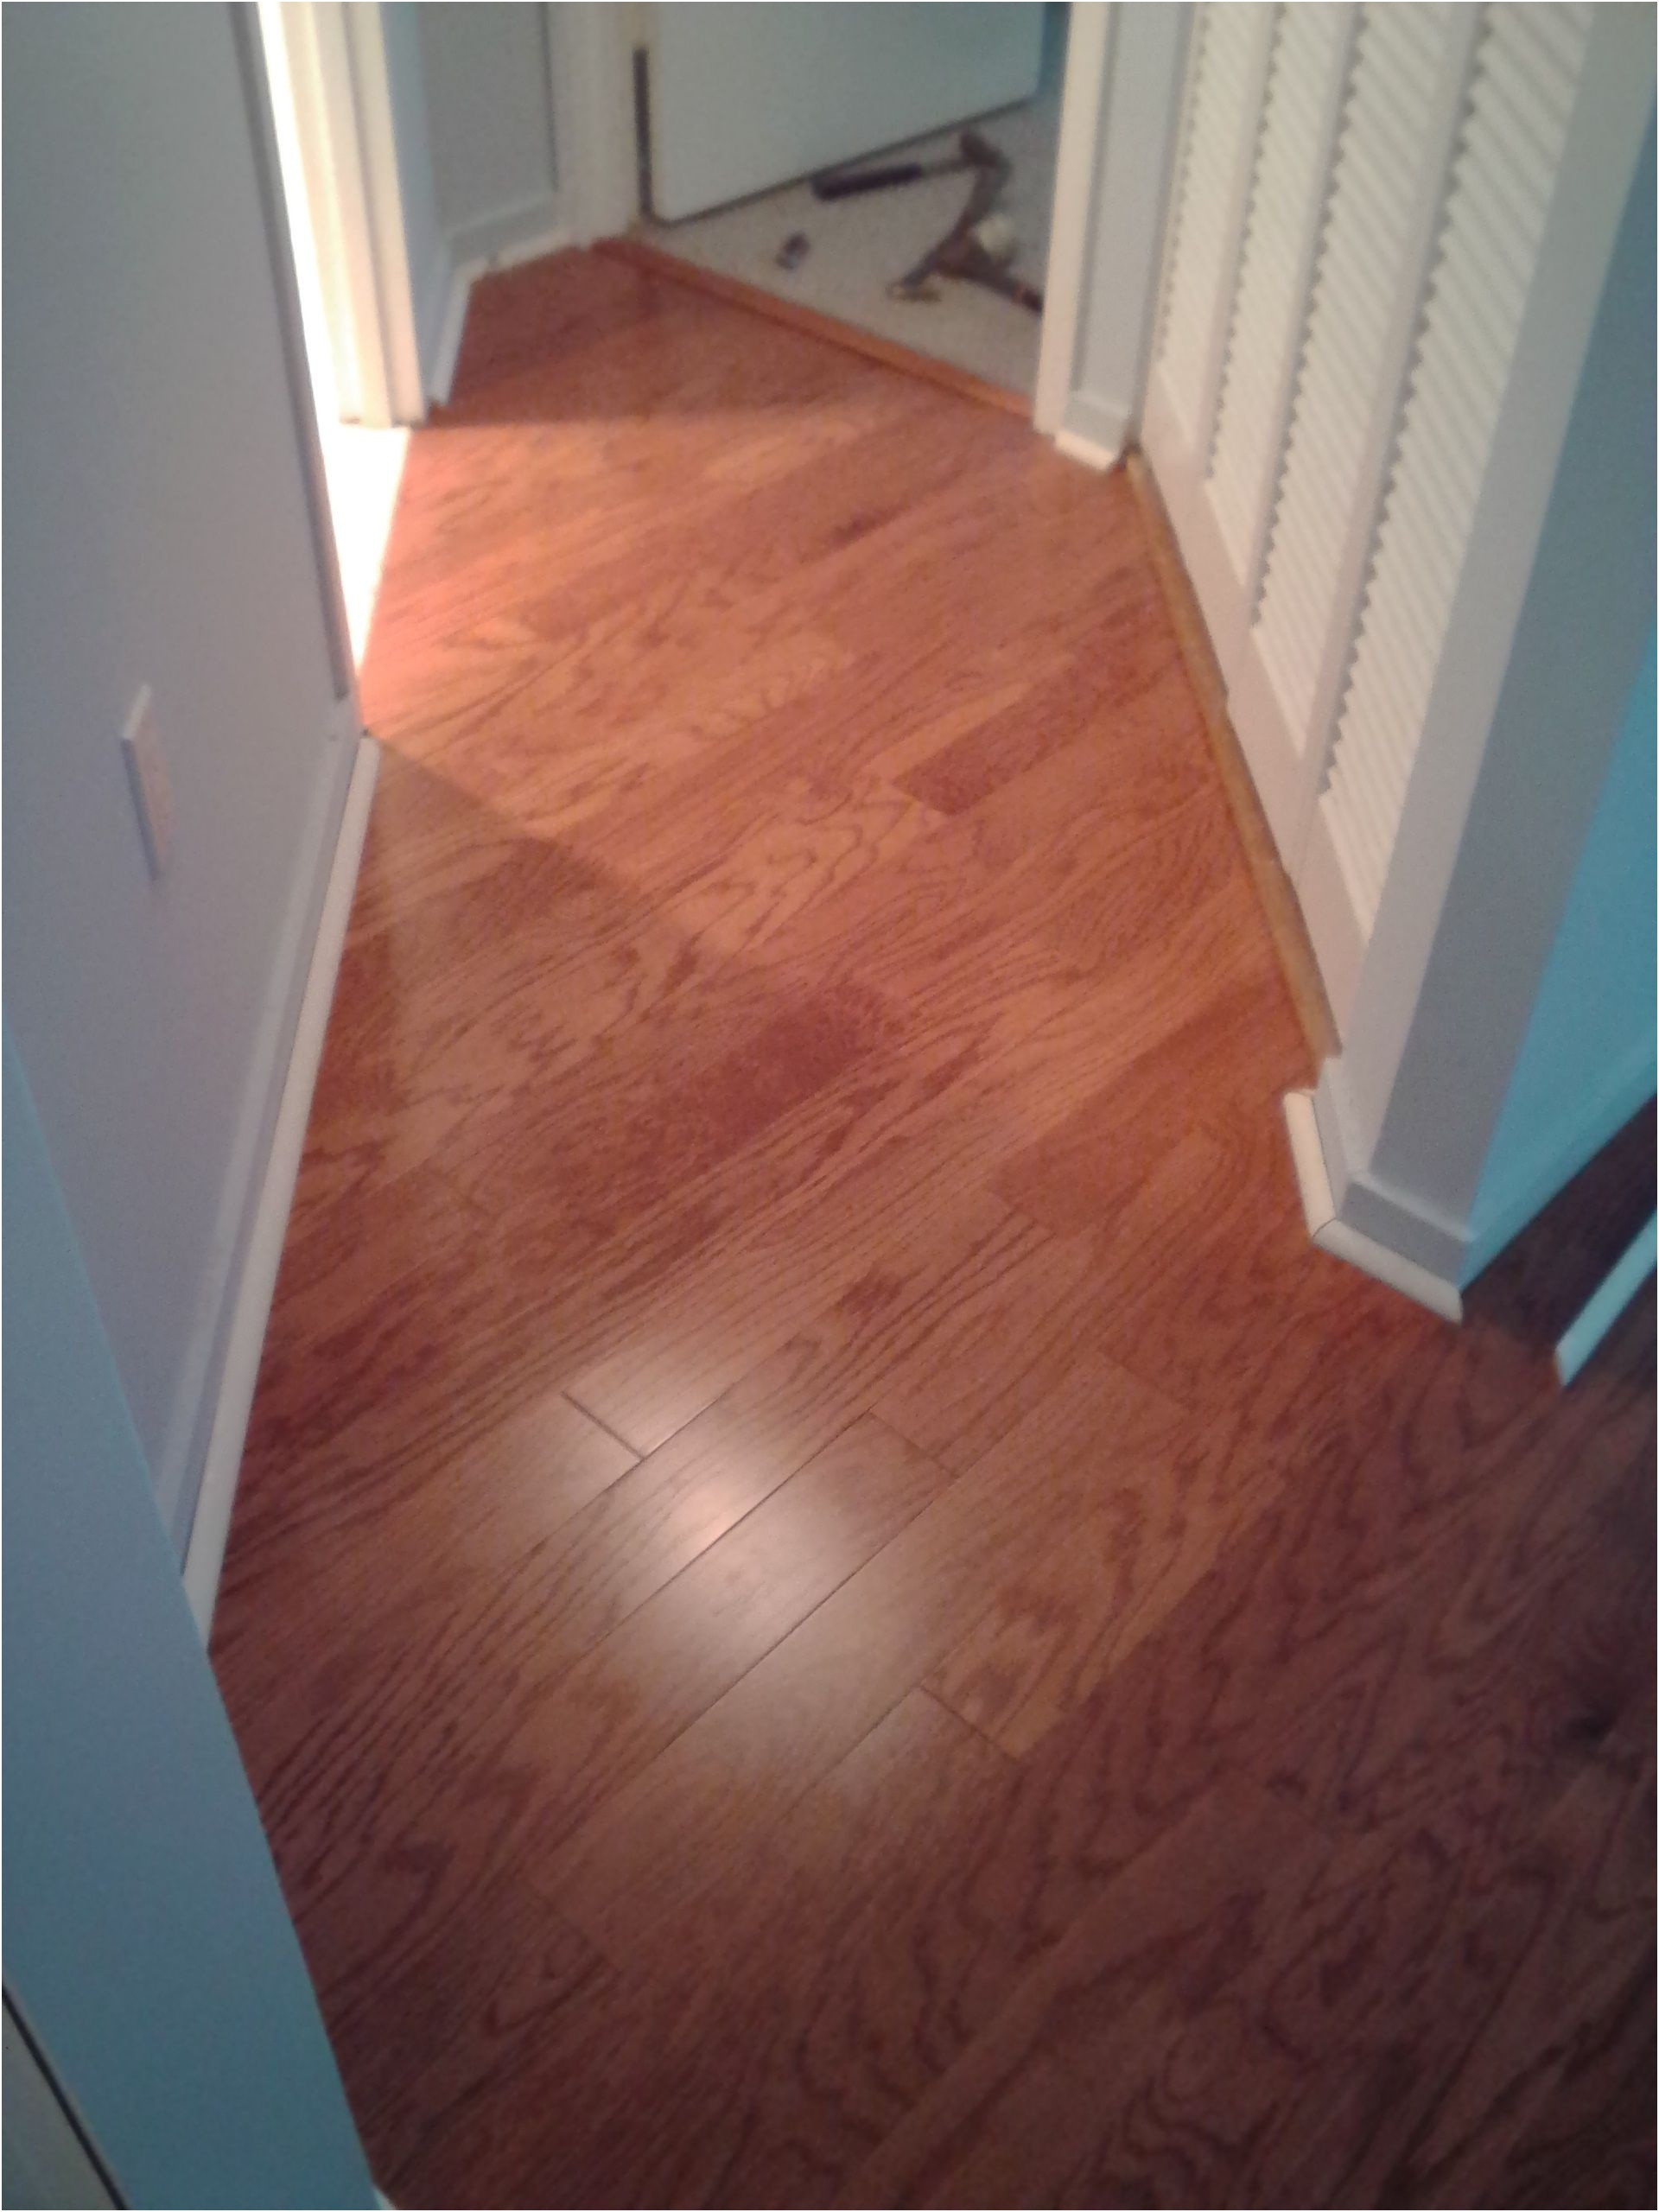 engineered hardwood flooring manufacturers canada of engineered wood flooring installation guide awesome engineered with regard to engineered wood flooring installation guide awesome engineered hardwood flooring diagonal installation throughout the